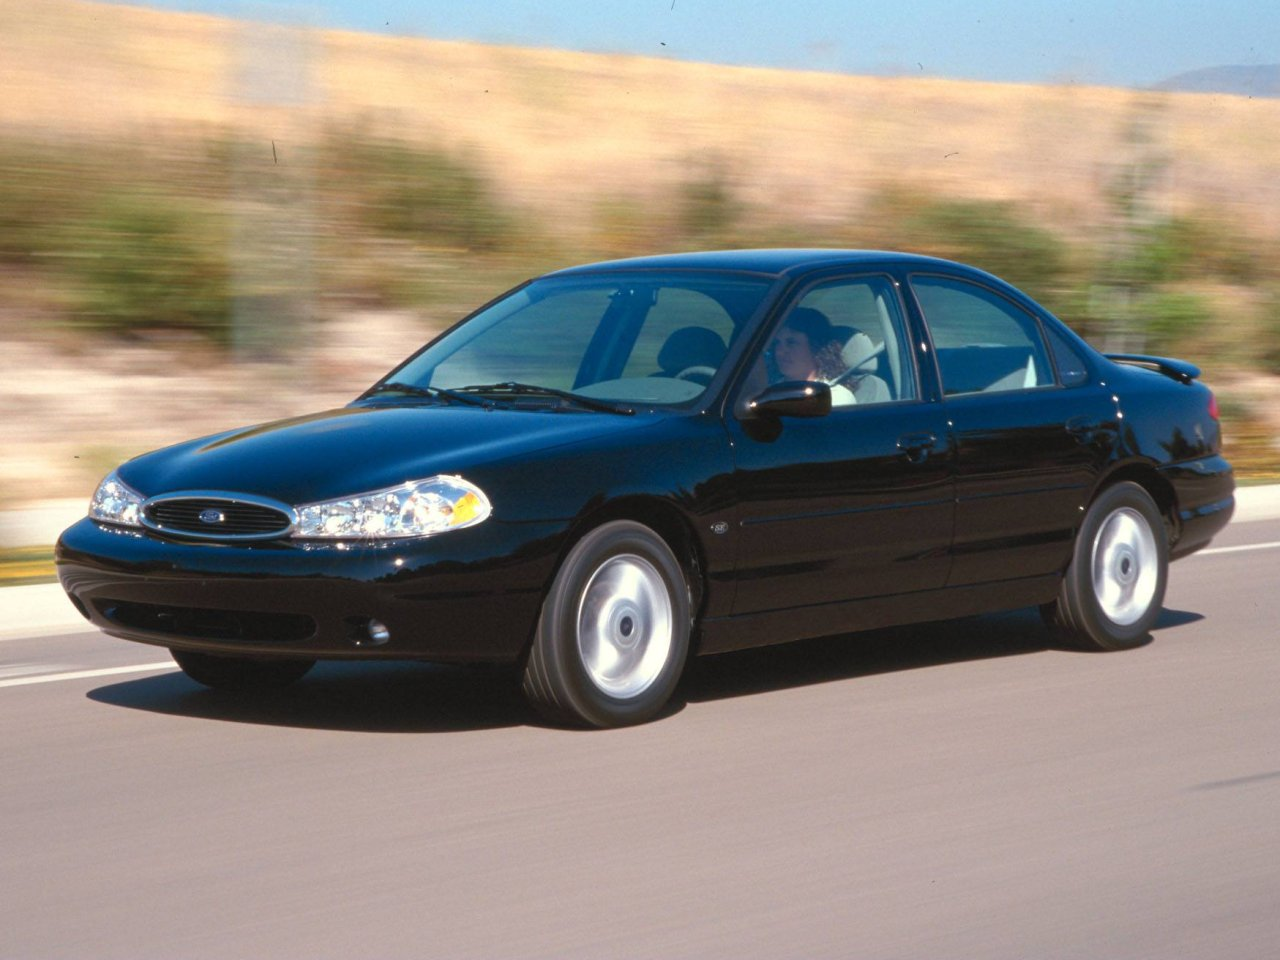 Ford Contour #8